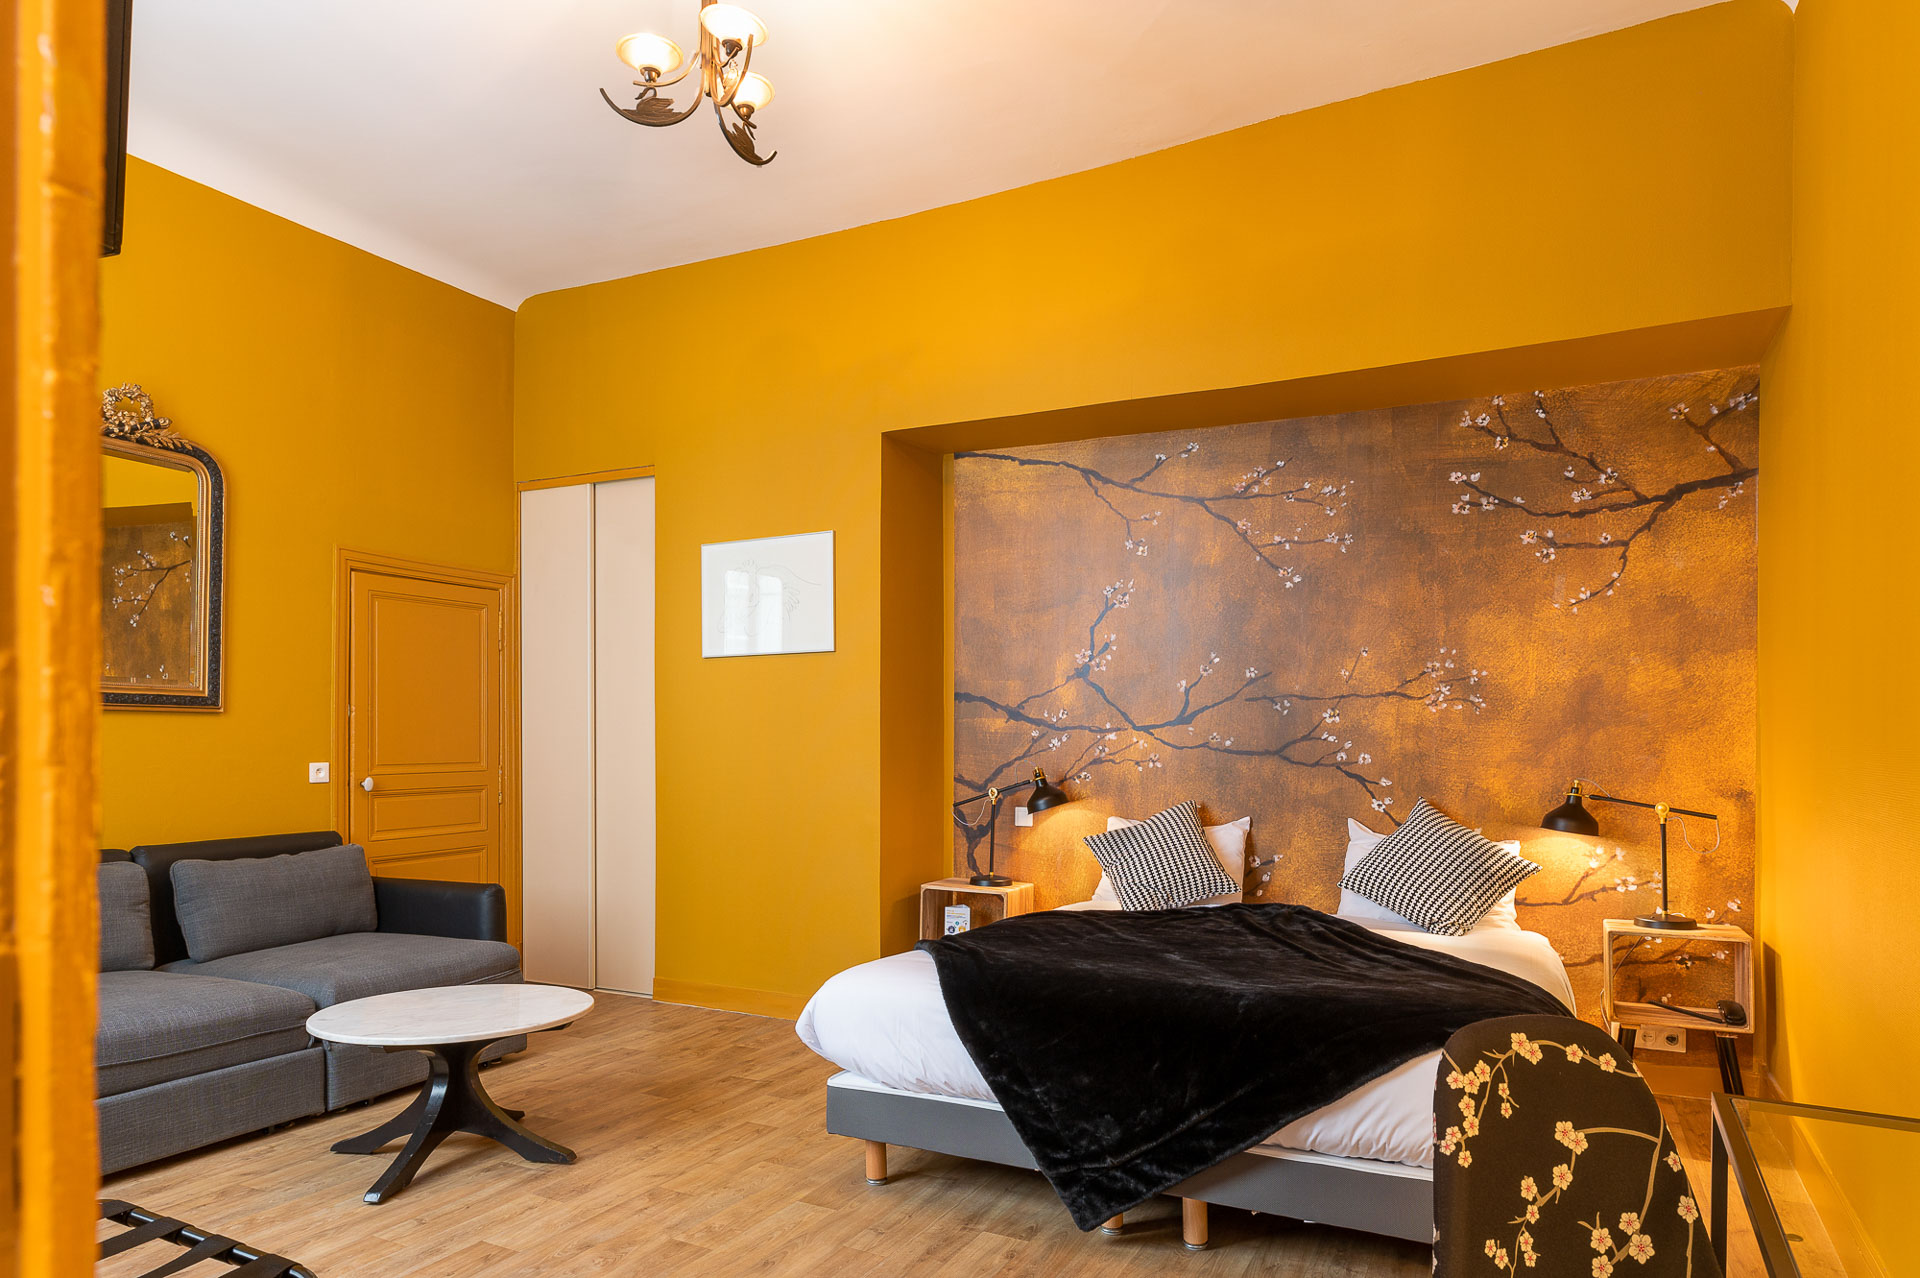 A charming room in the Hôtel du Cygne, for a great night.